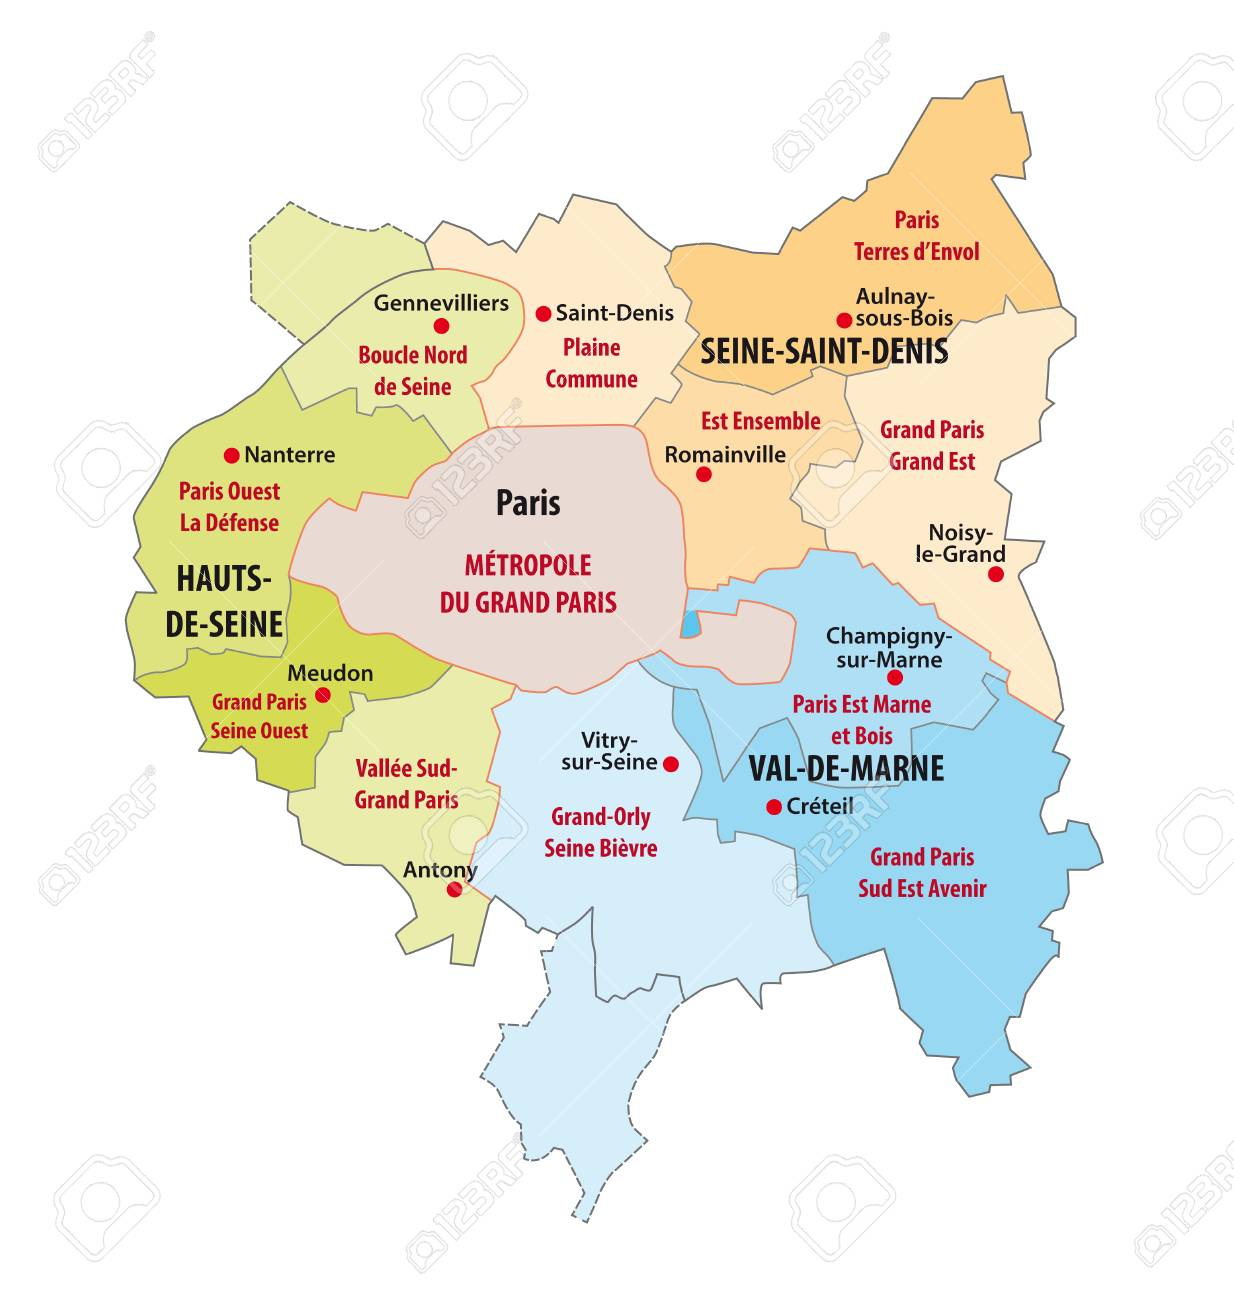 Administrative Map Of The Municipal Association In The Ile De France Royalty Free Cliparts Vectors And Stock Illustration Image 117797485